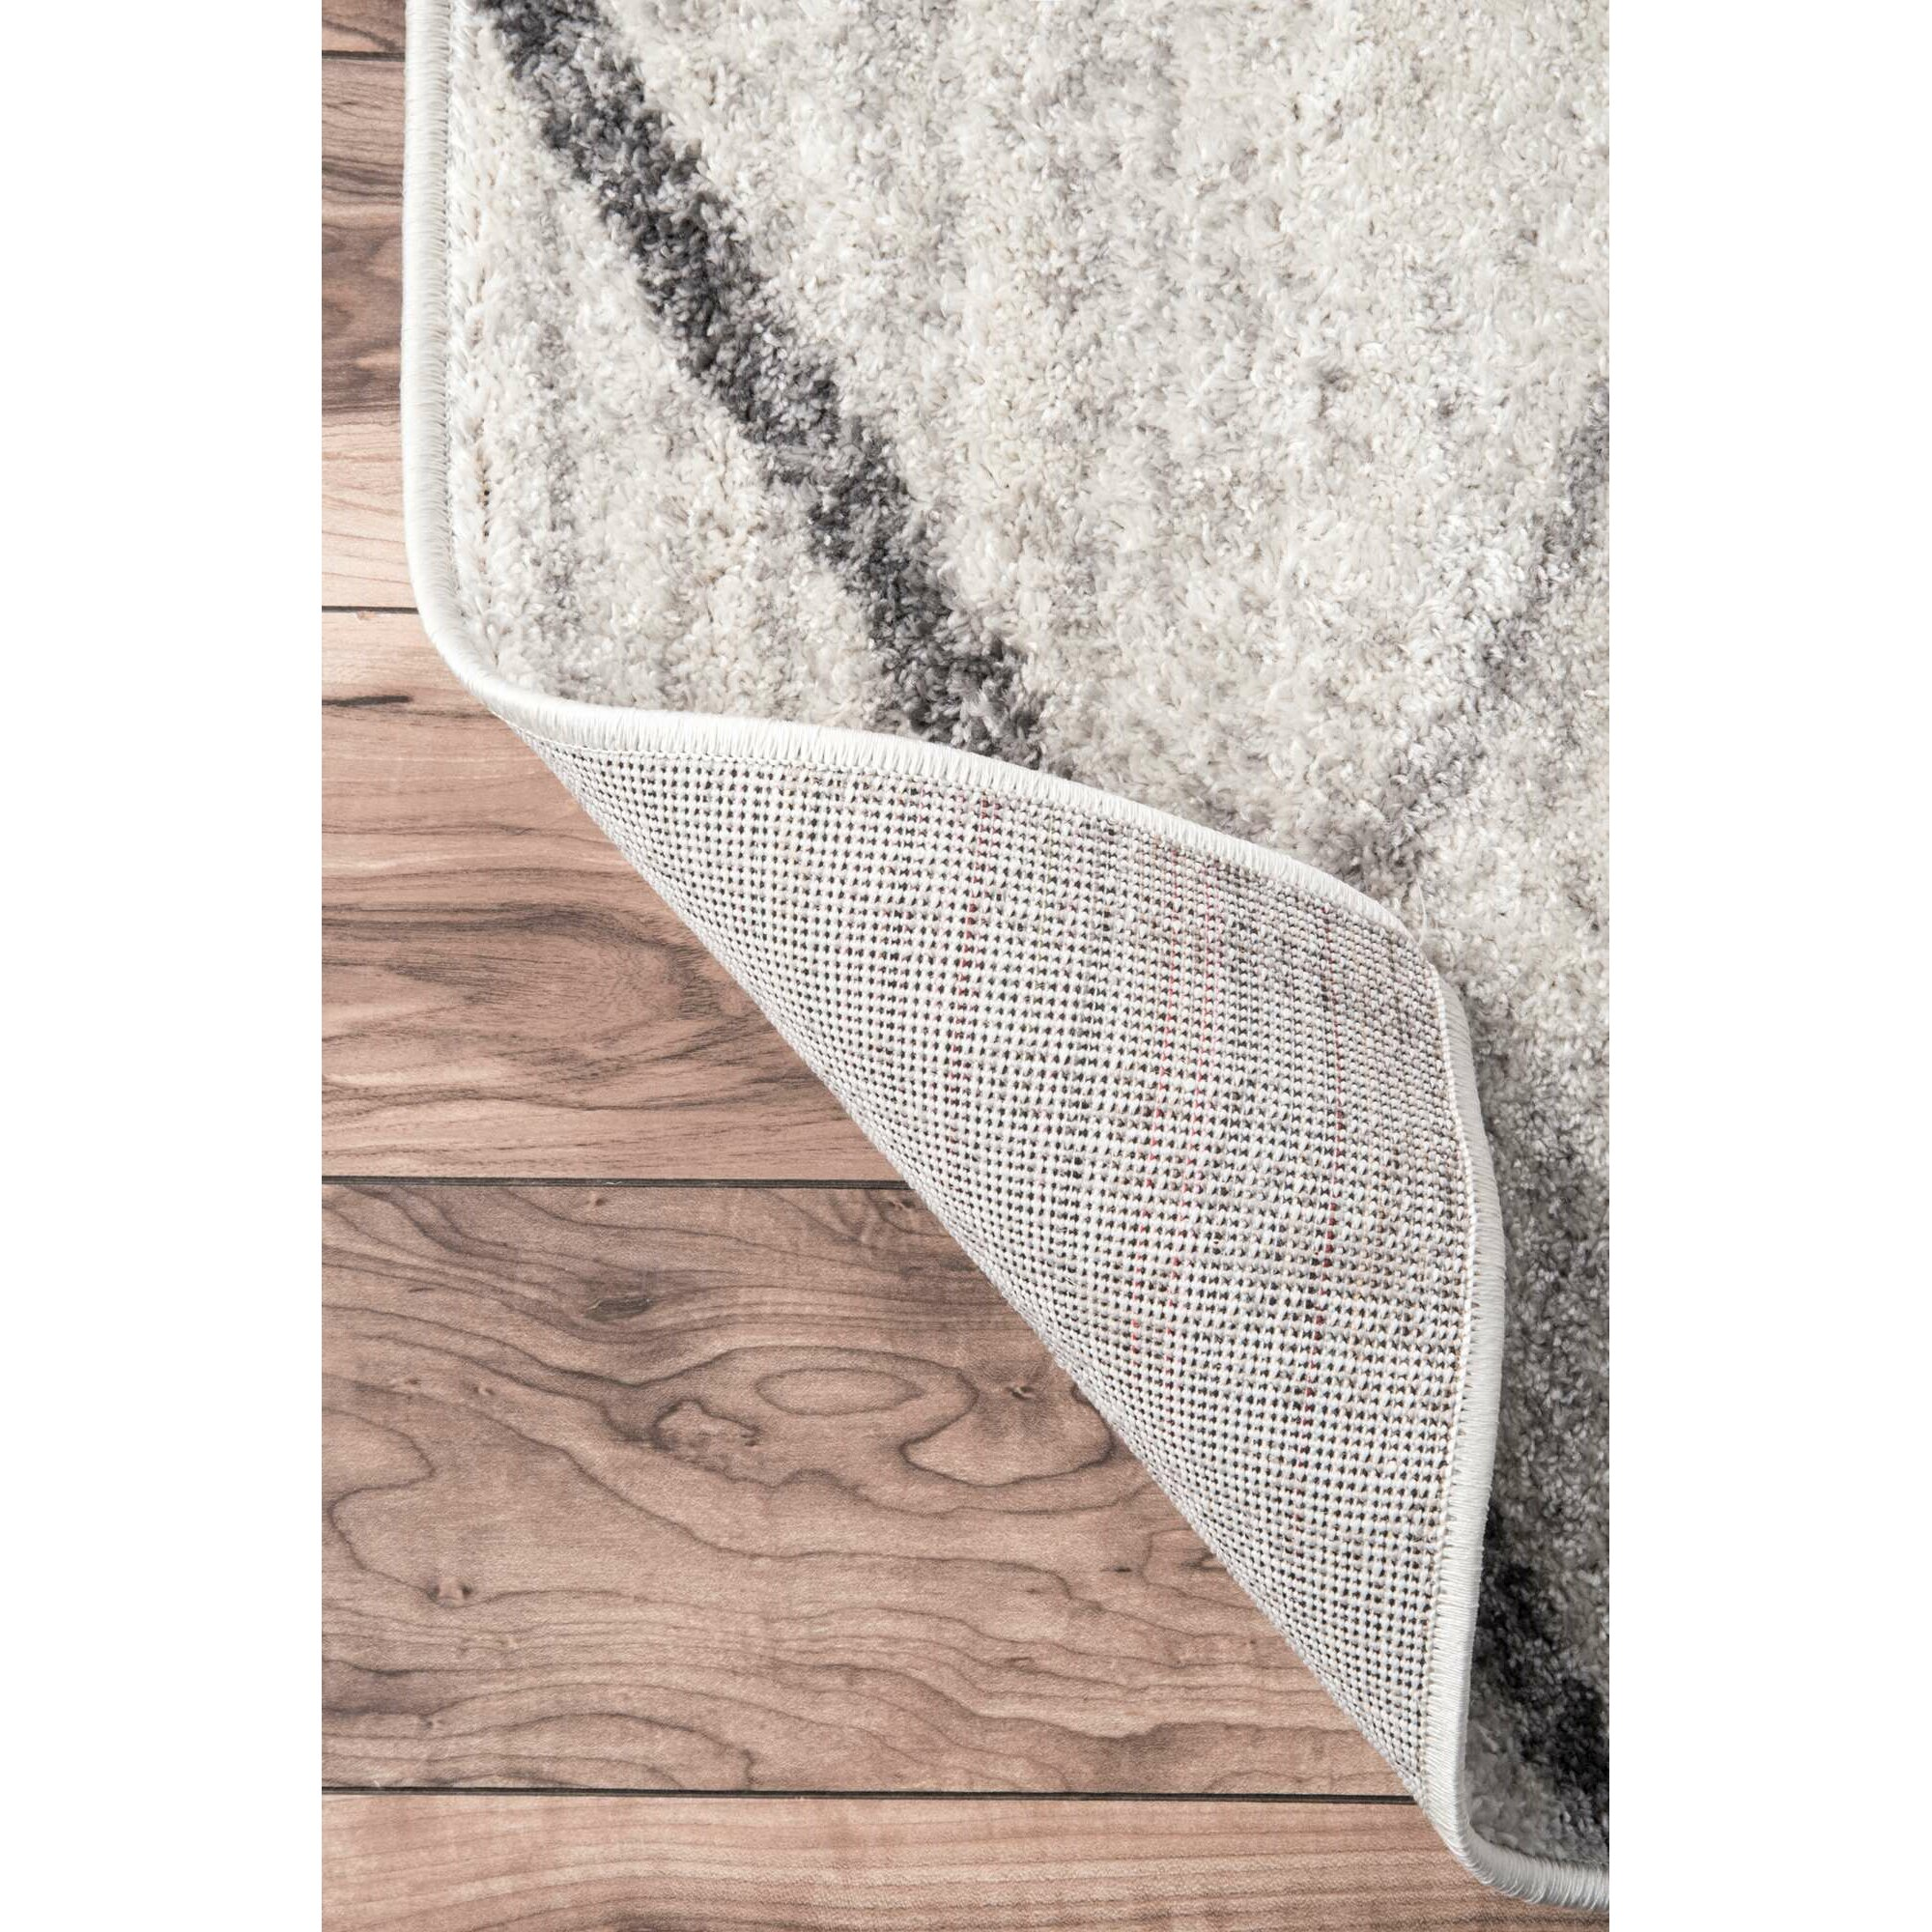 mercury row azha broken lattice white/light gray area rug